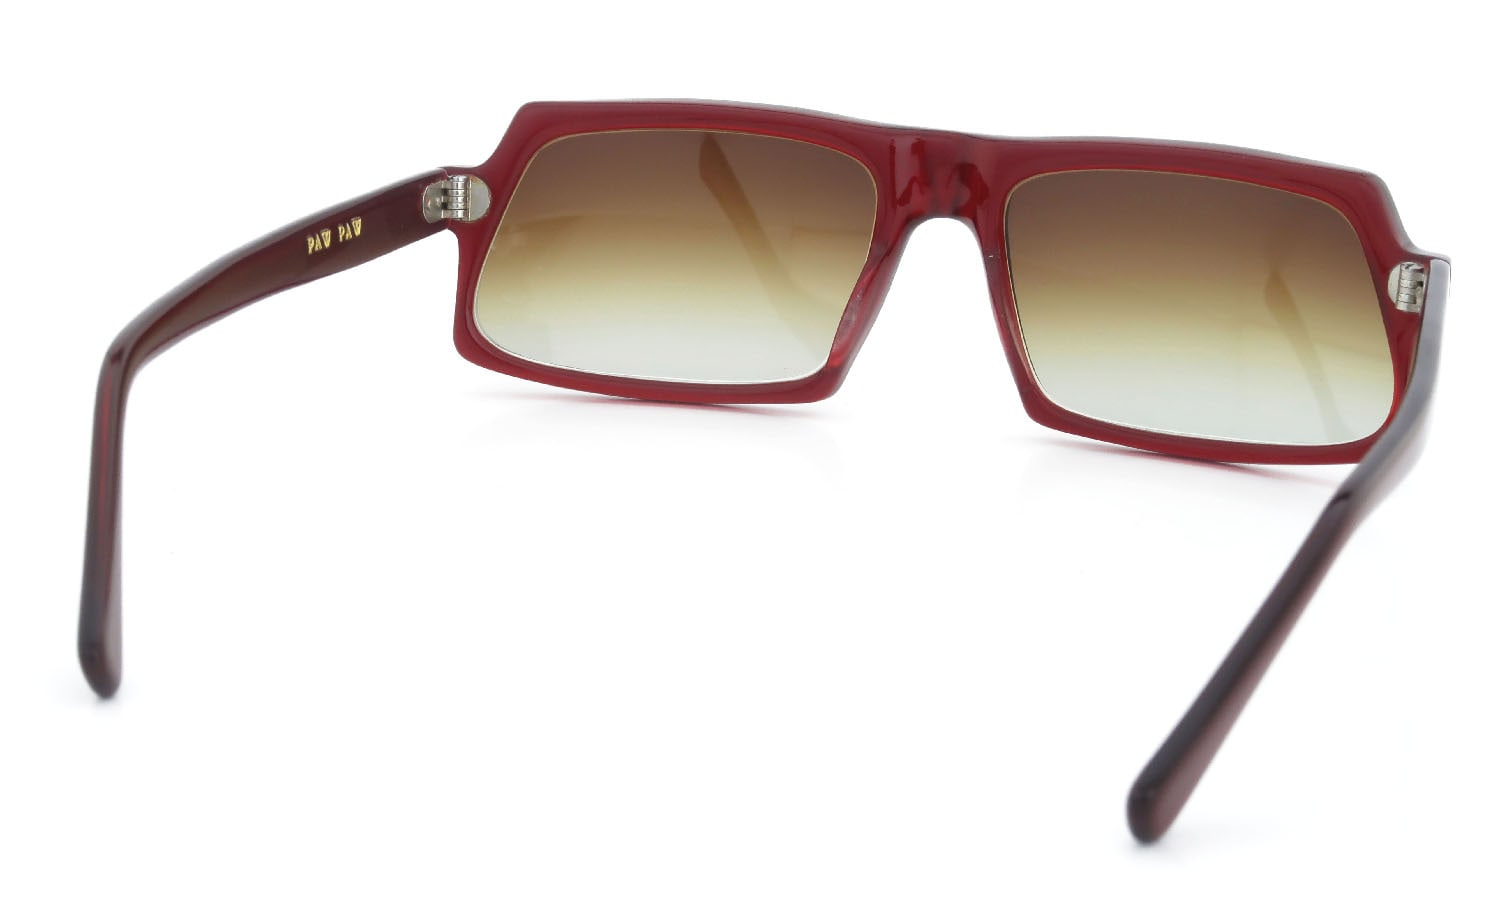 Oliver Goldsmith PAW PAW Copper